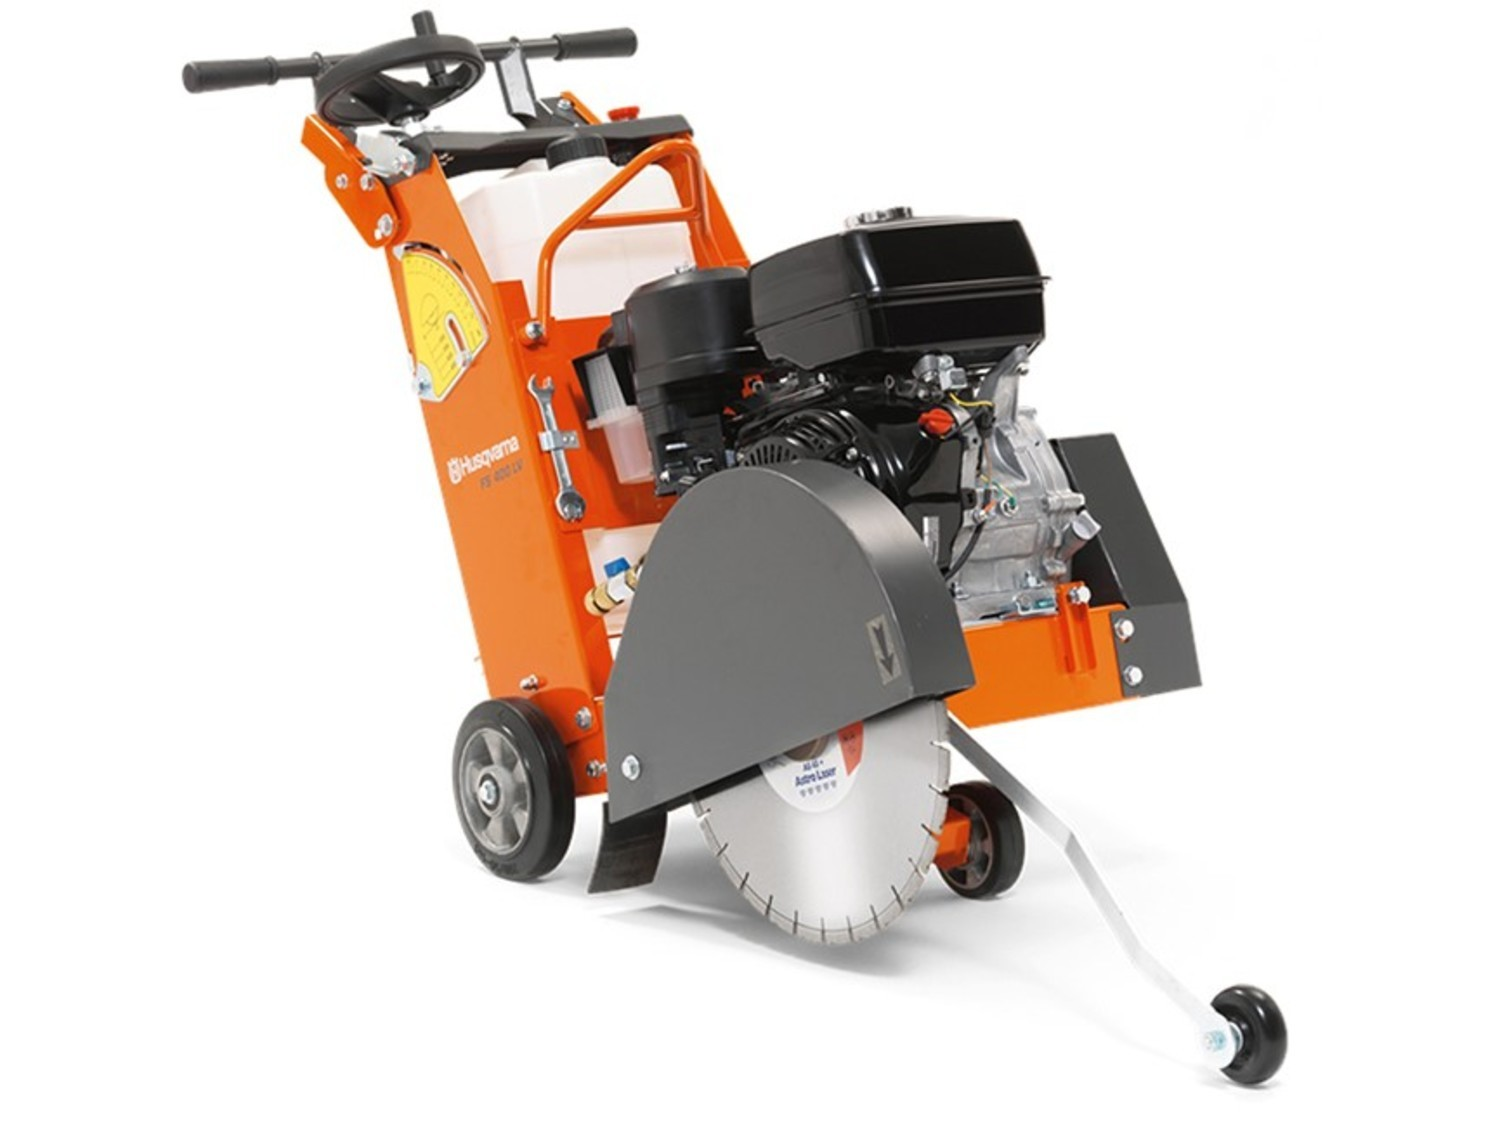 Petrol Floor Saw Product Page Image